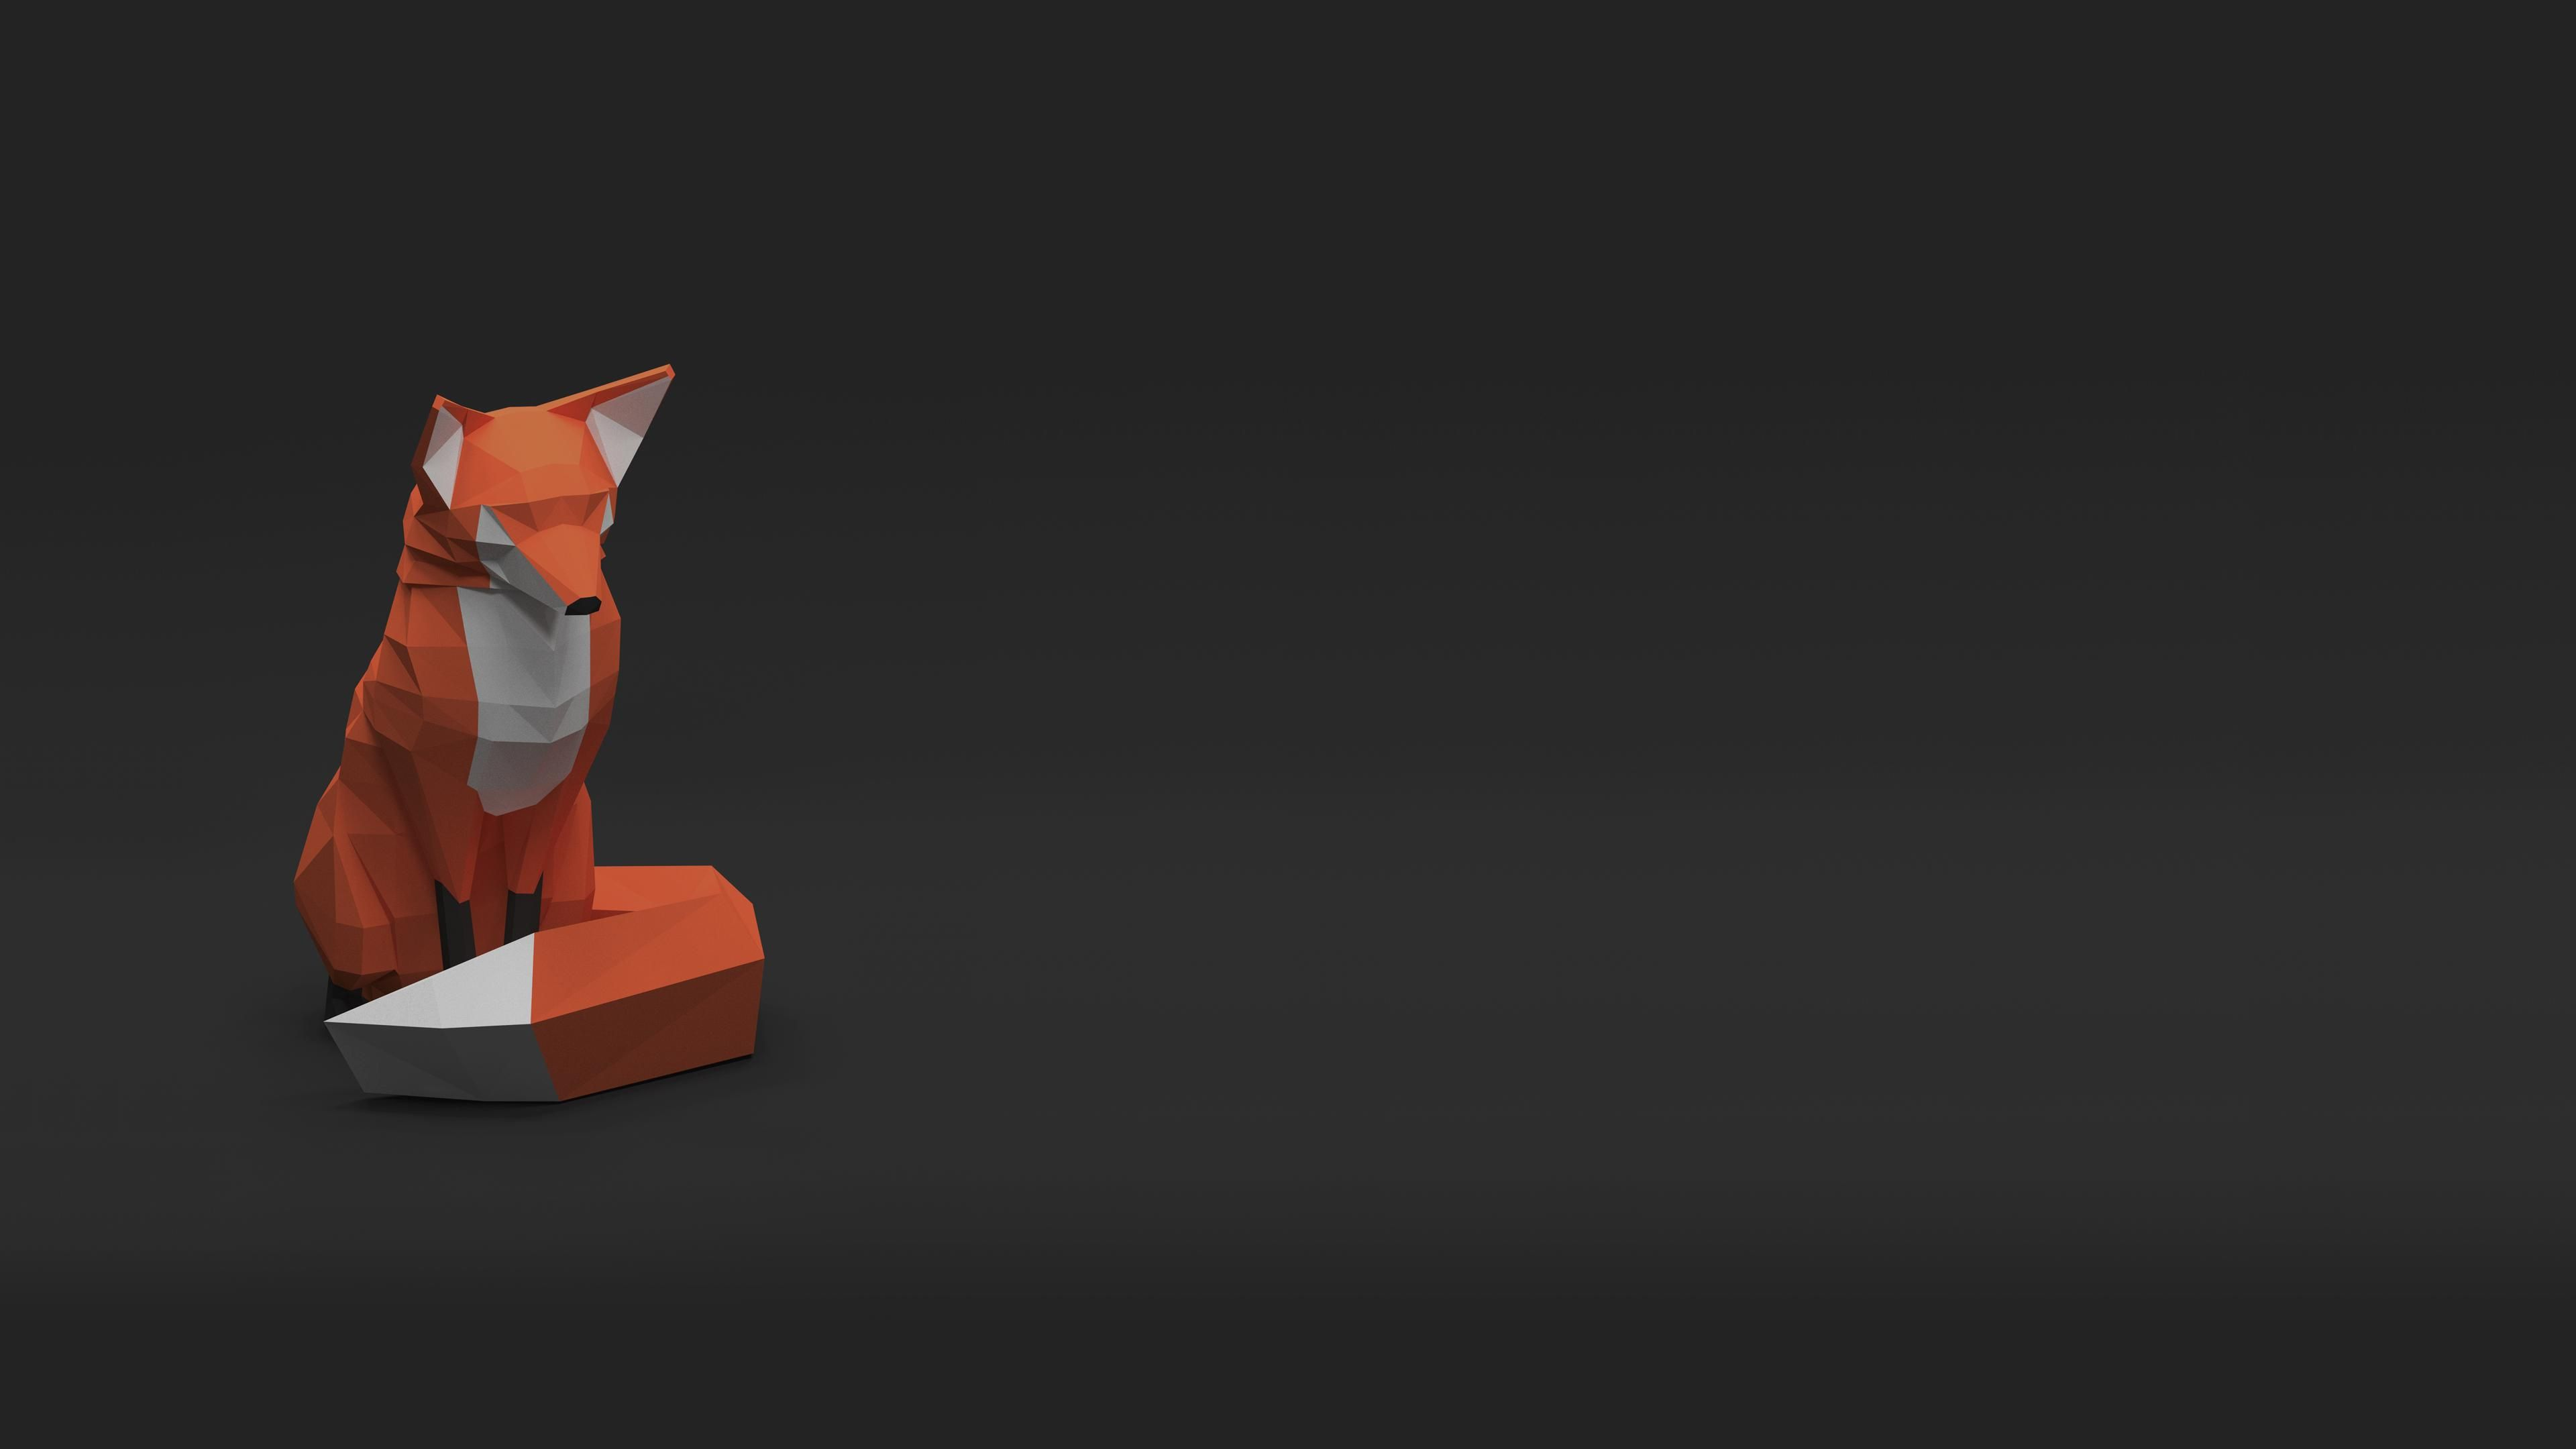 Low Poly Fox [38402160] Hdwallpaper wallpaper image